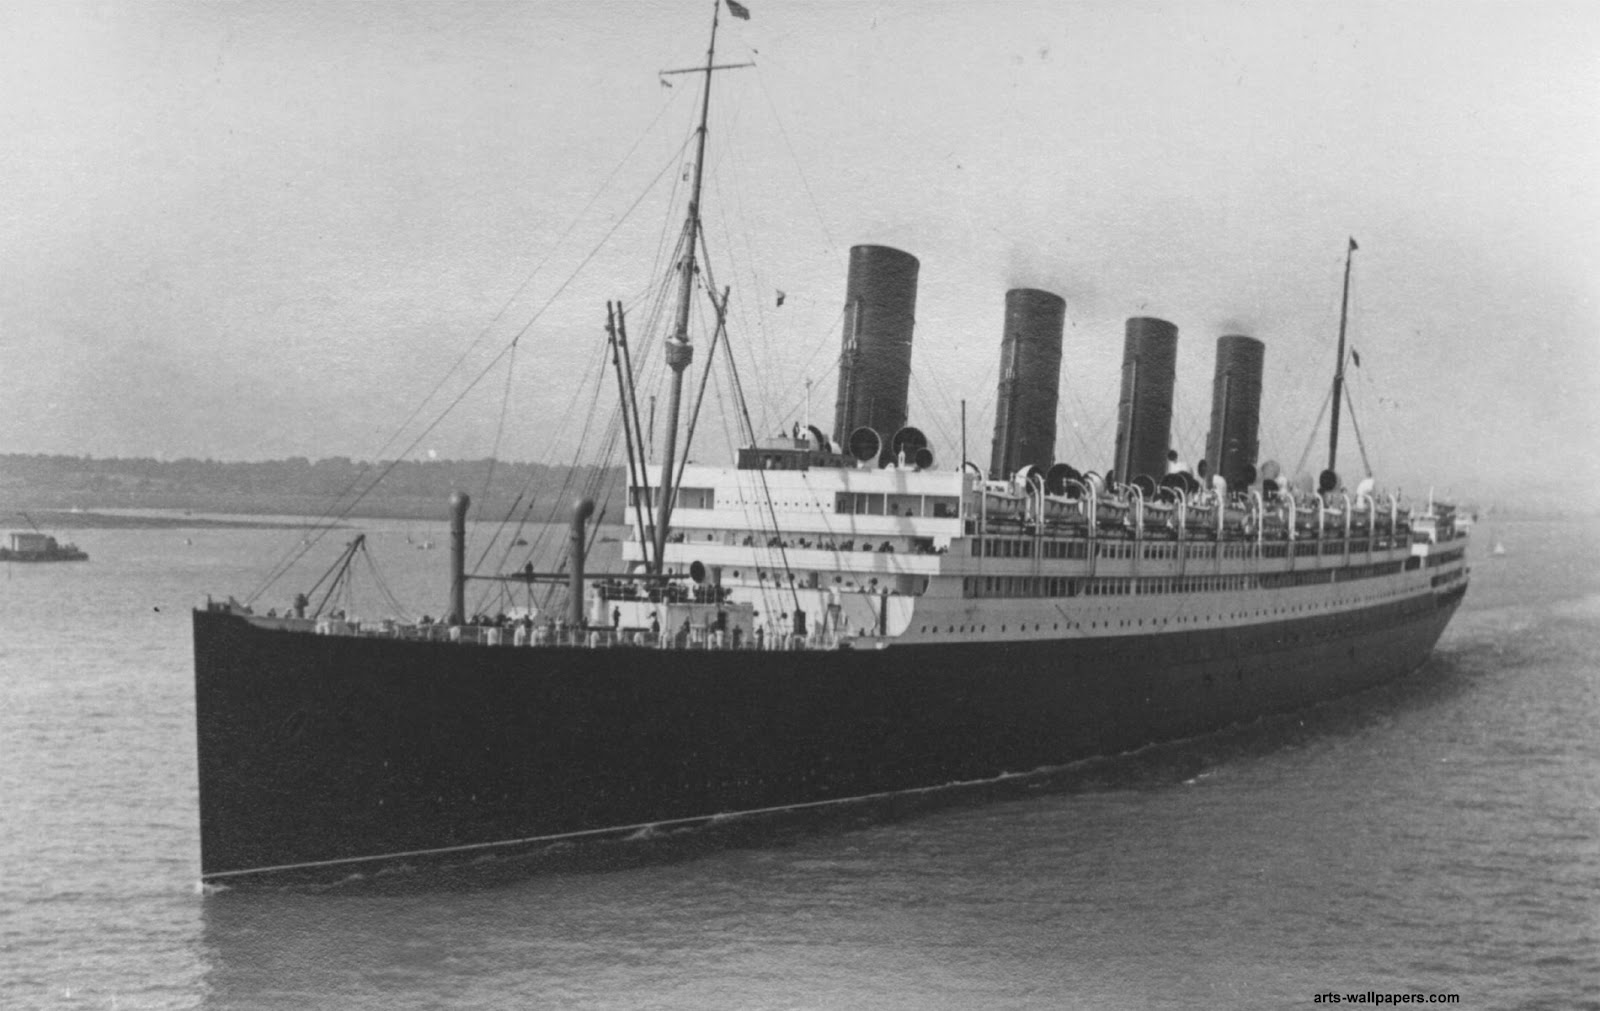 SPRINTACULAR: R.M.S. Titanic 100 years have passed...